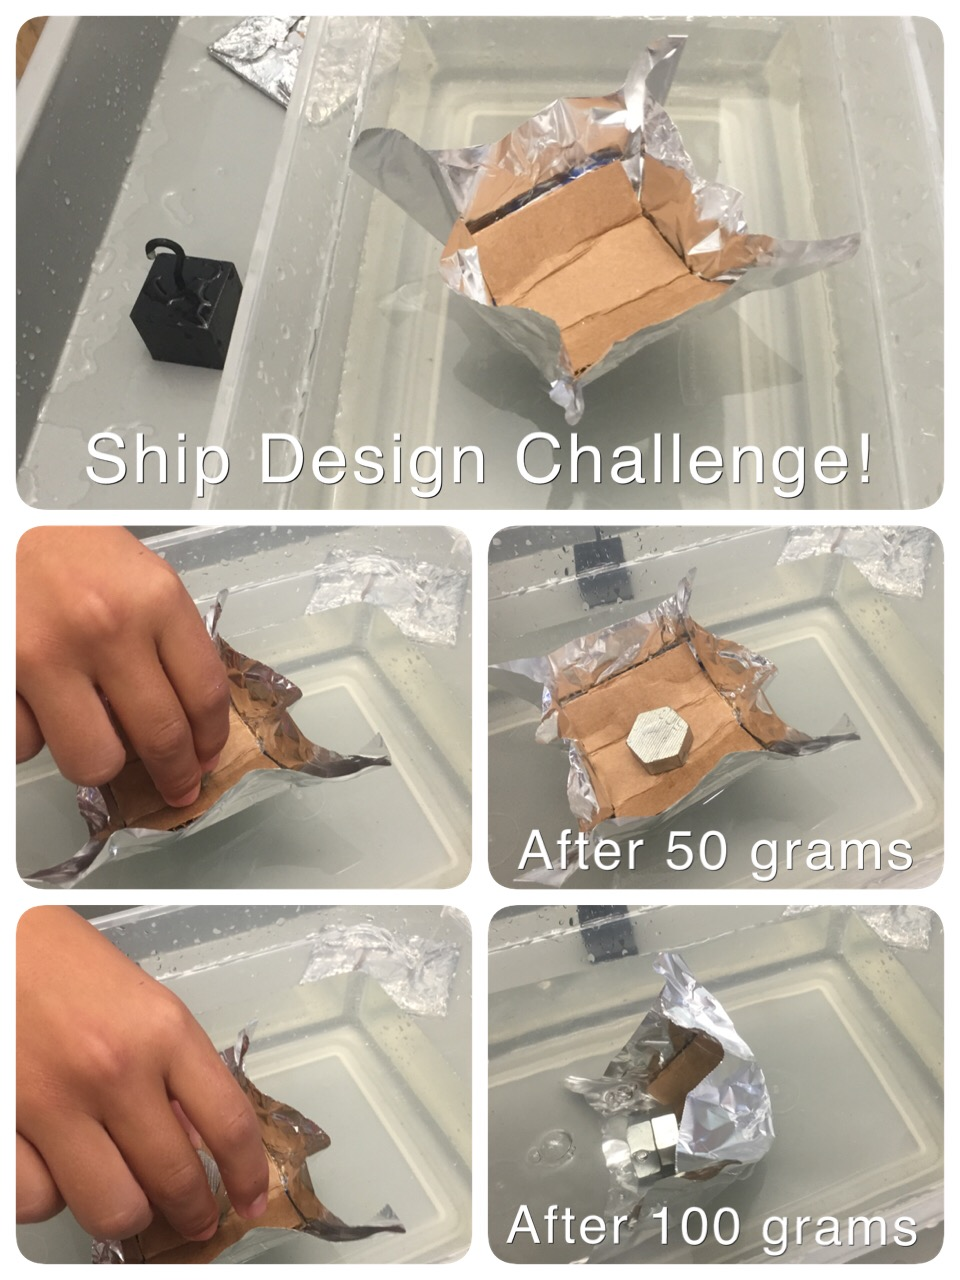 A week of STEM challenges! www.theardentteacher.com